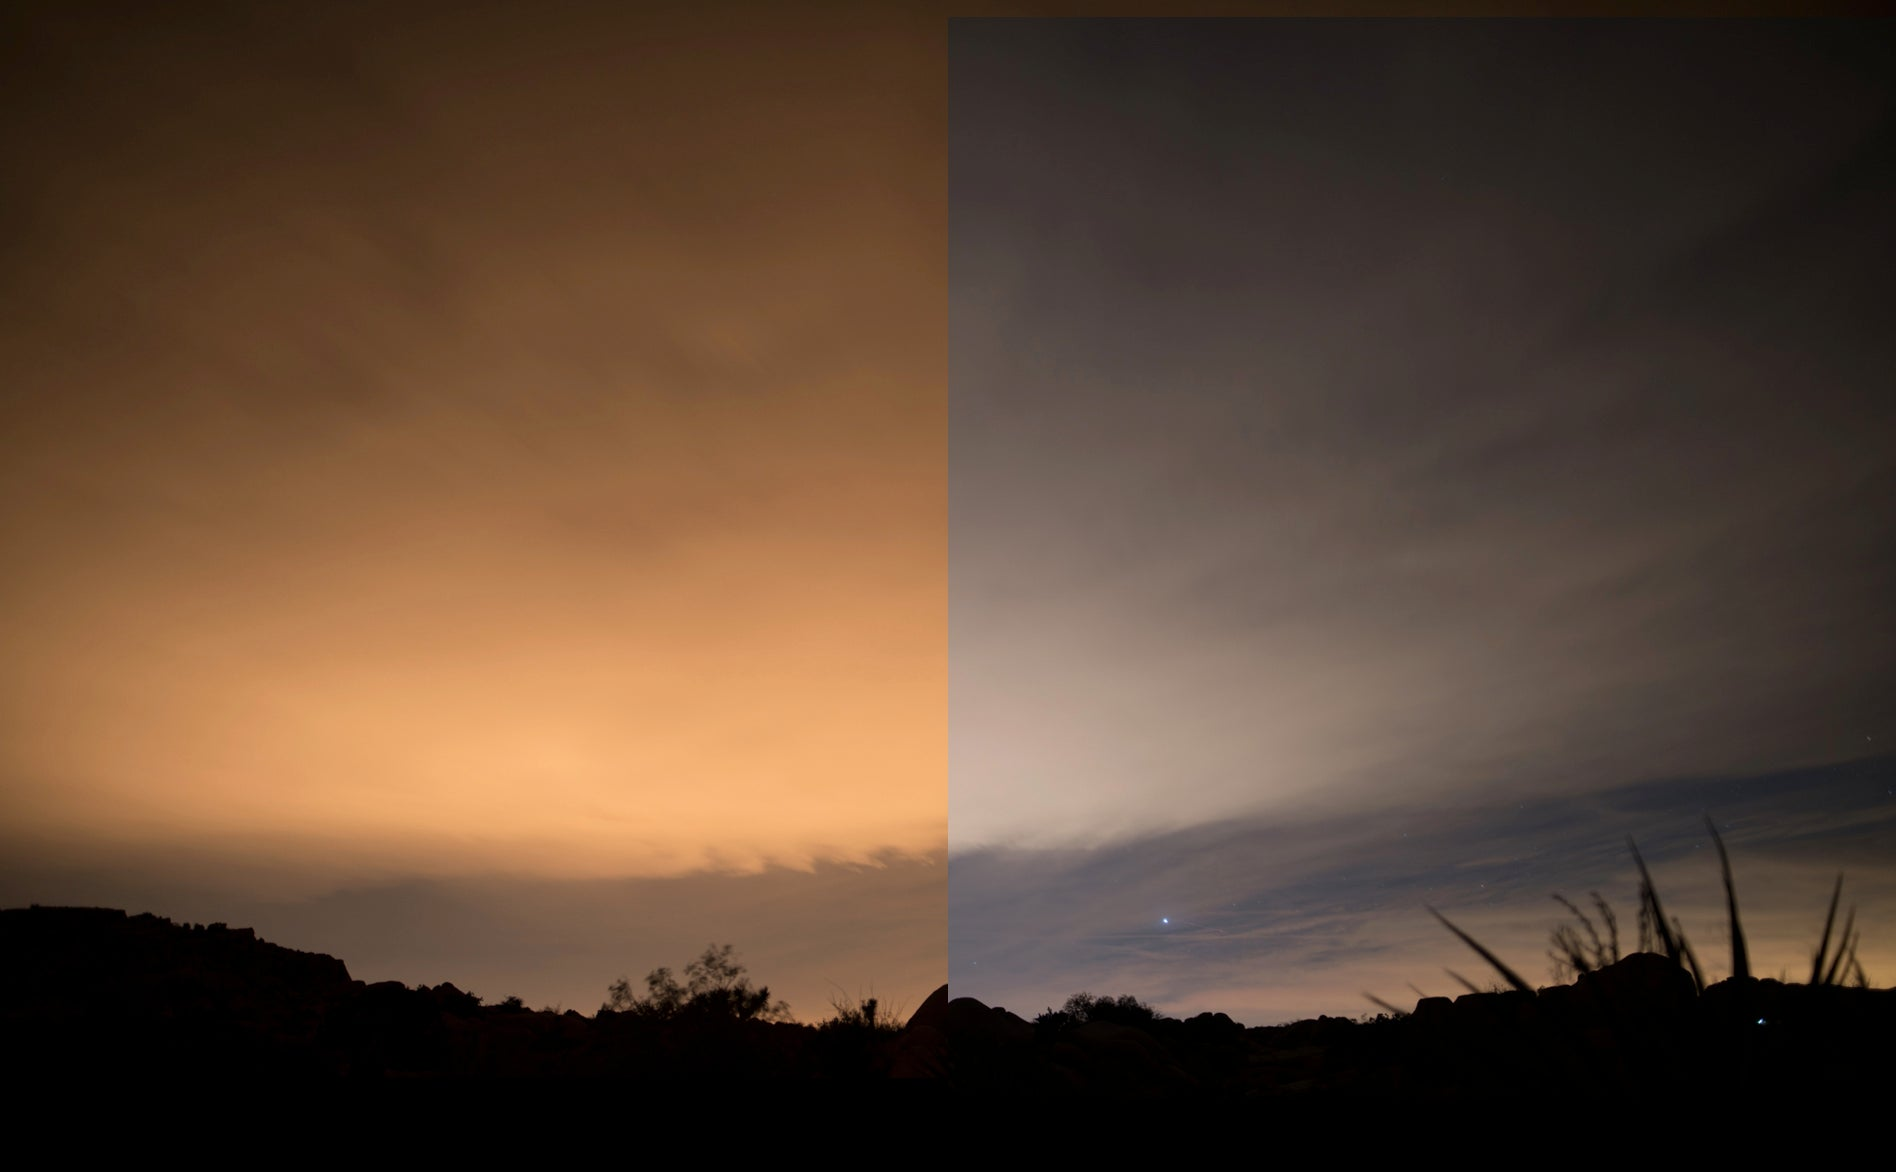 Night Sky Filter before and after